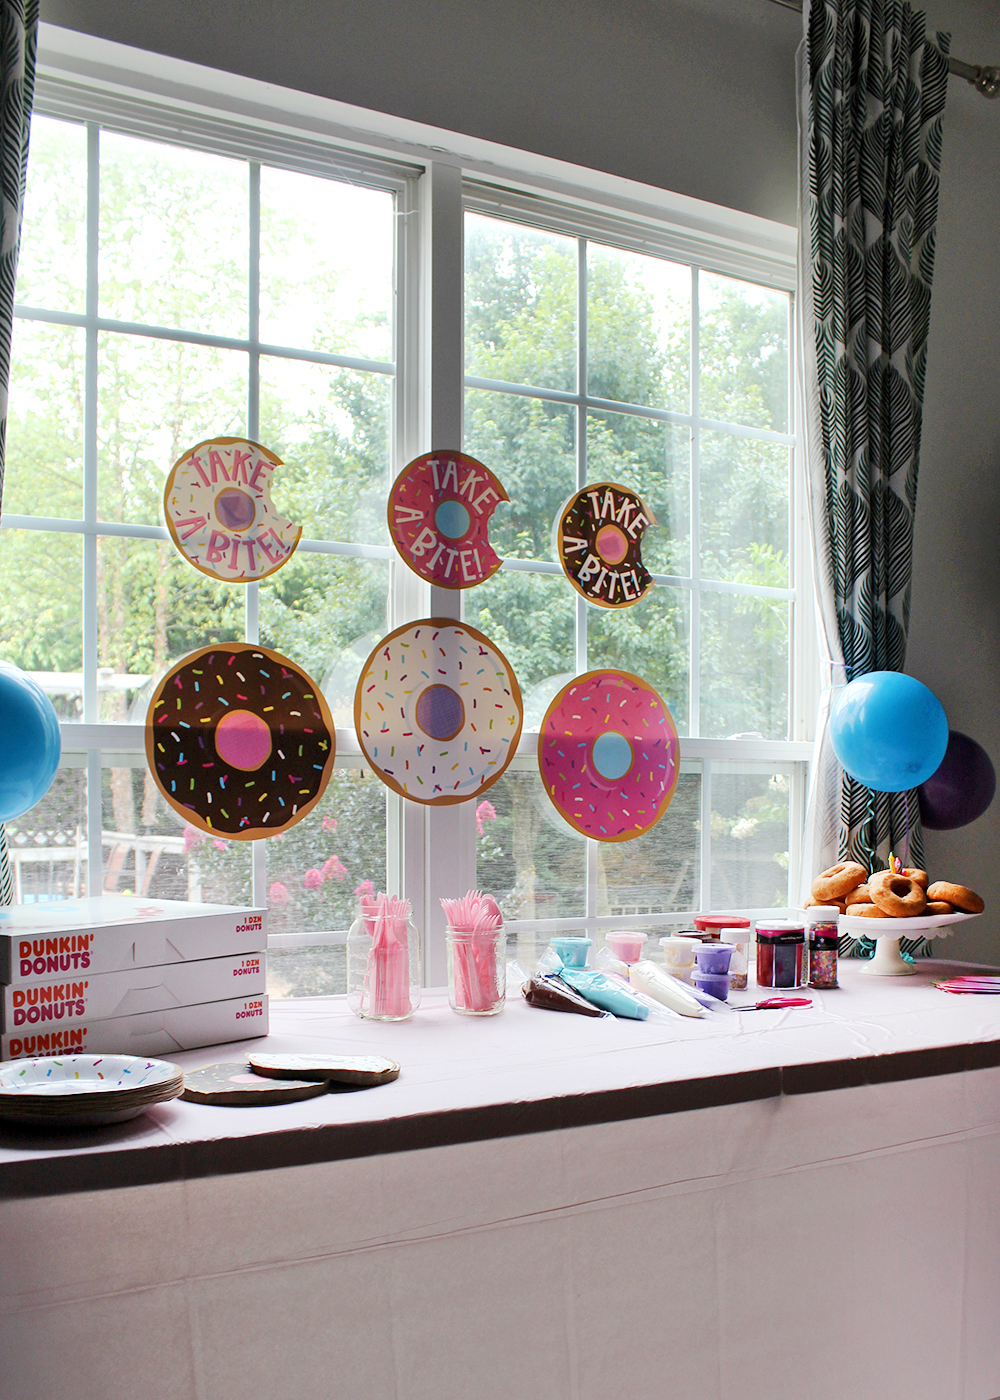 tips for hosting a donut decorating party #birthdayparty #donutparty #kidsparty